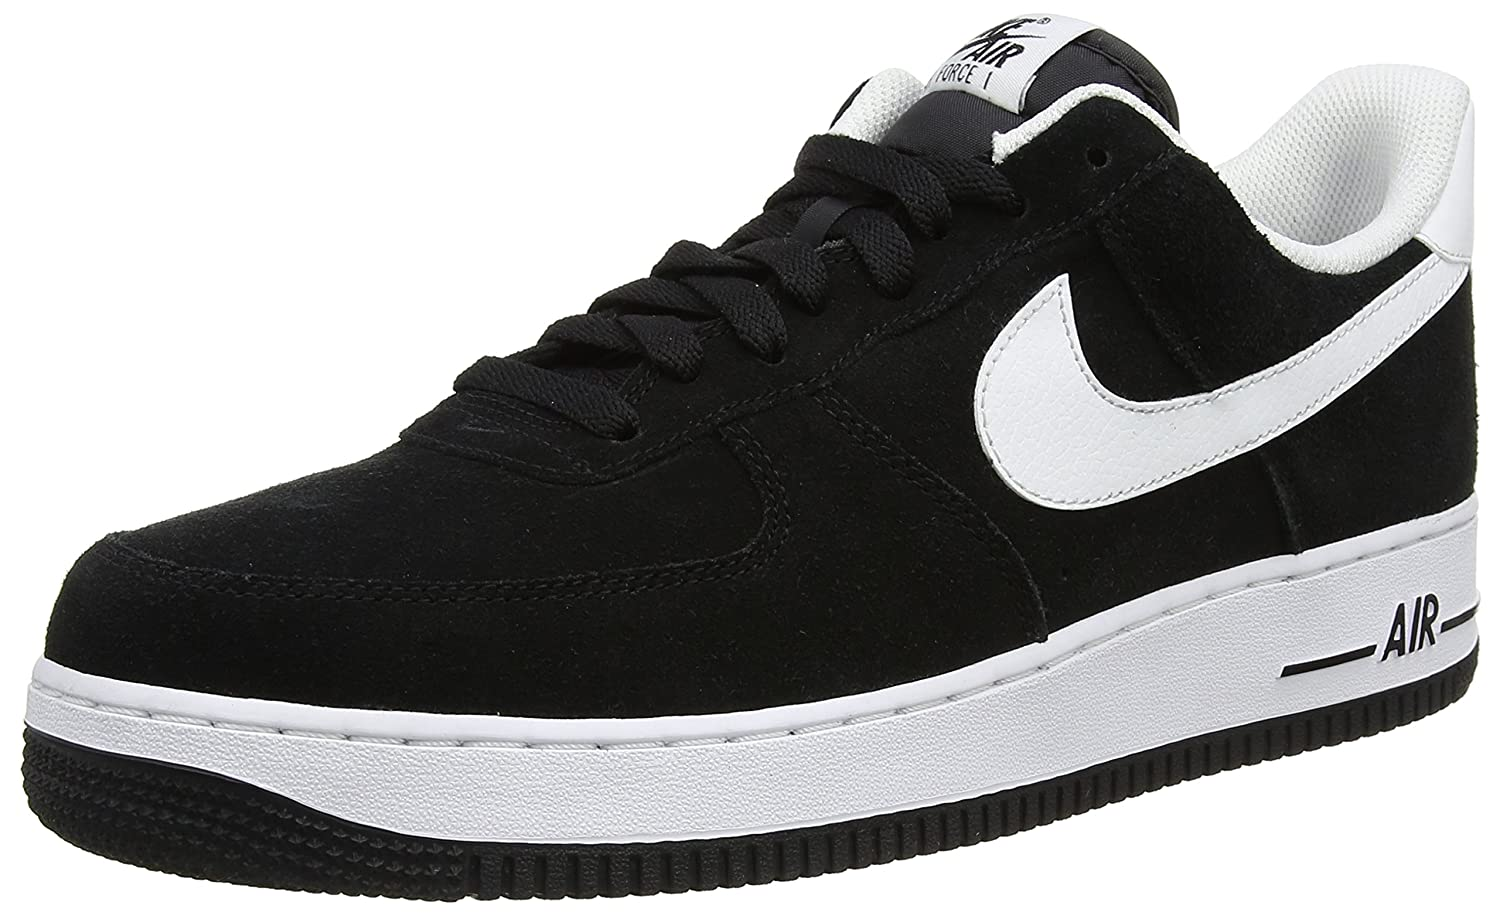 official photos ef22c d706c Amazon.com | Nike Men's Air Force 1 Low Sneaker | Basketball